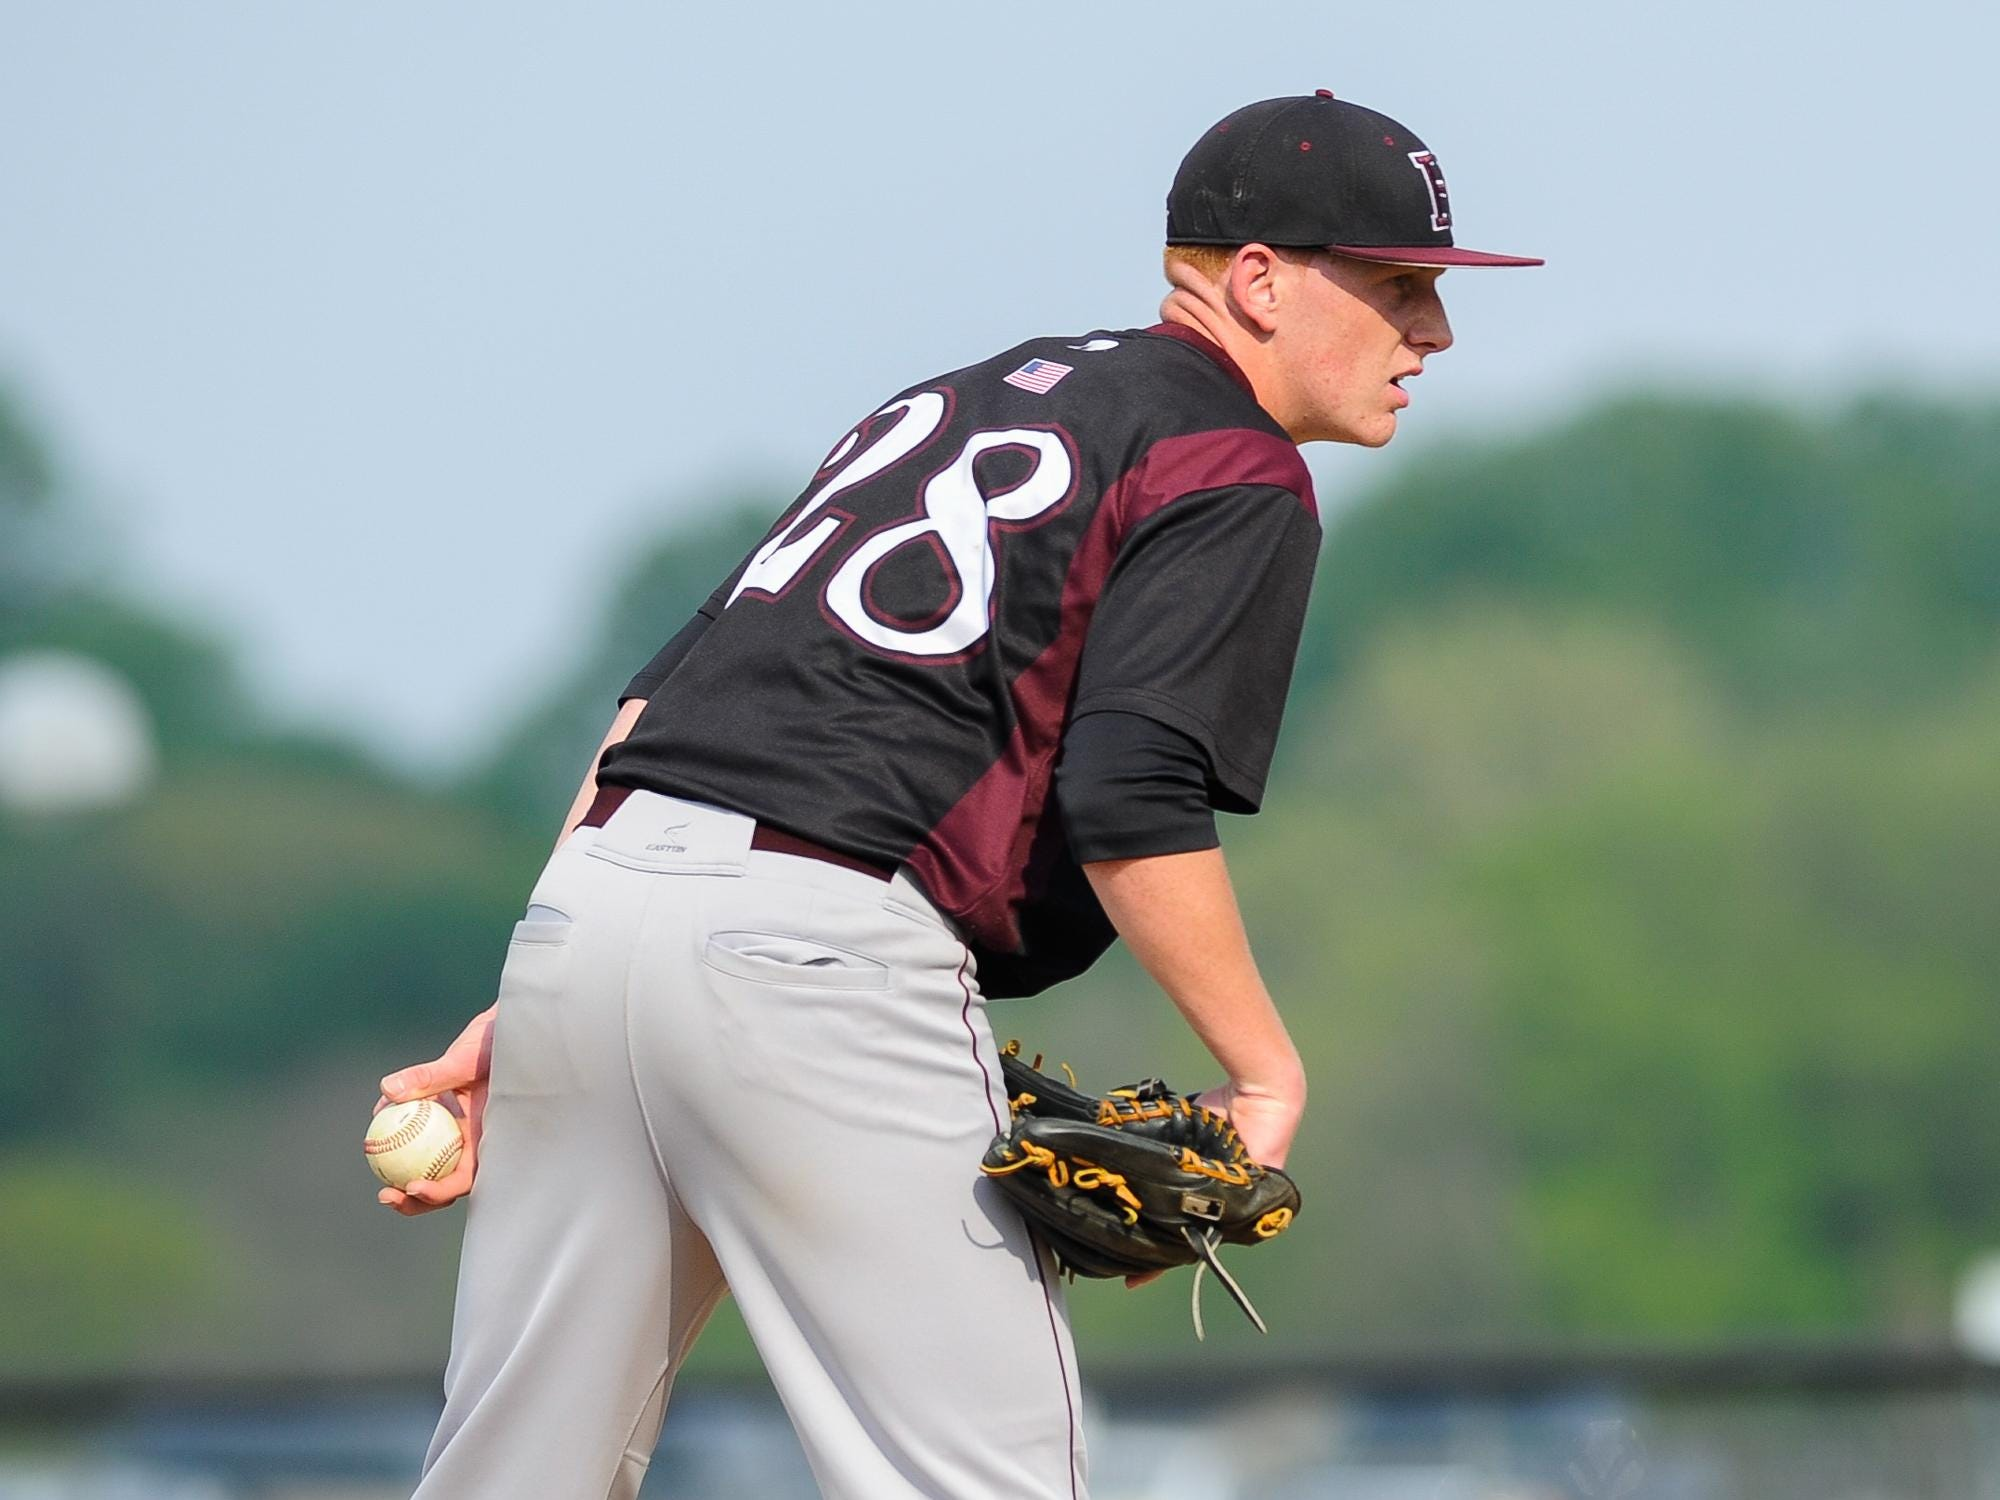 Hodgson pitcher Brandon Walter struck out 147 in 72 innings, and allowed just 25 hits, 16 walks and three earned runs in a standout 2015 season.